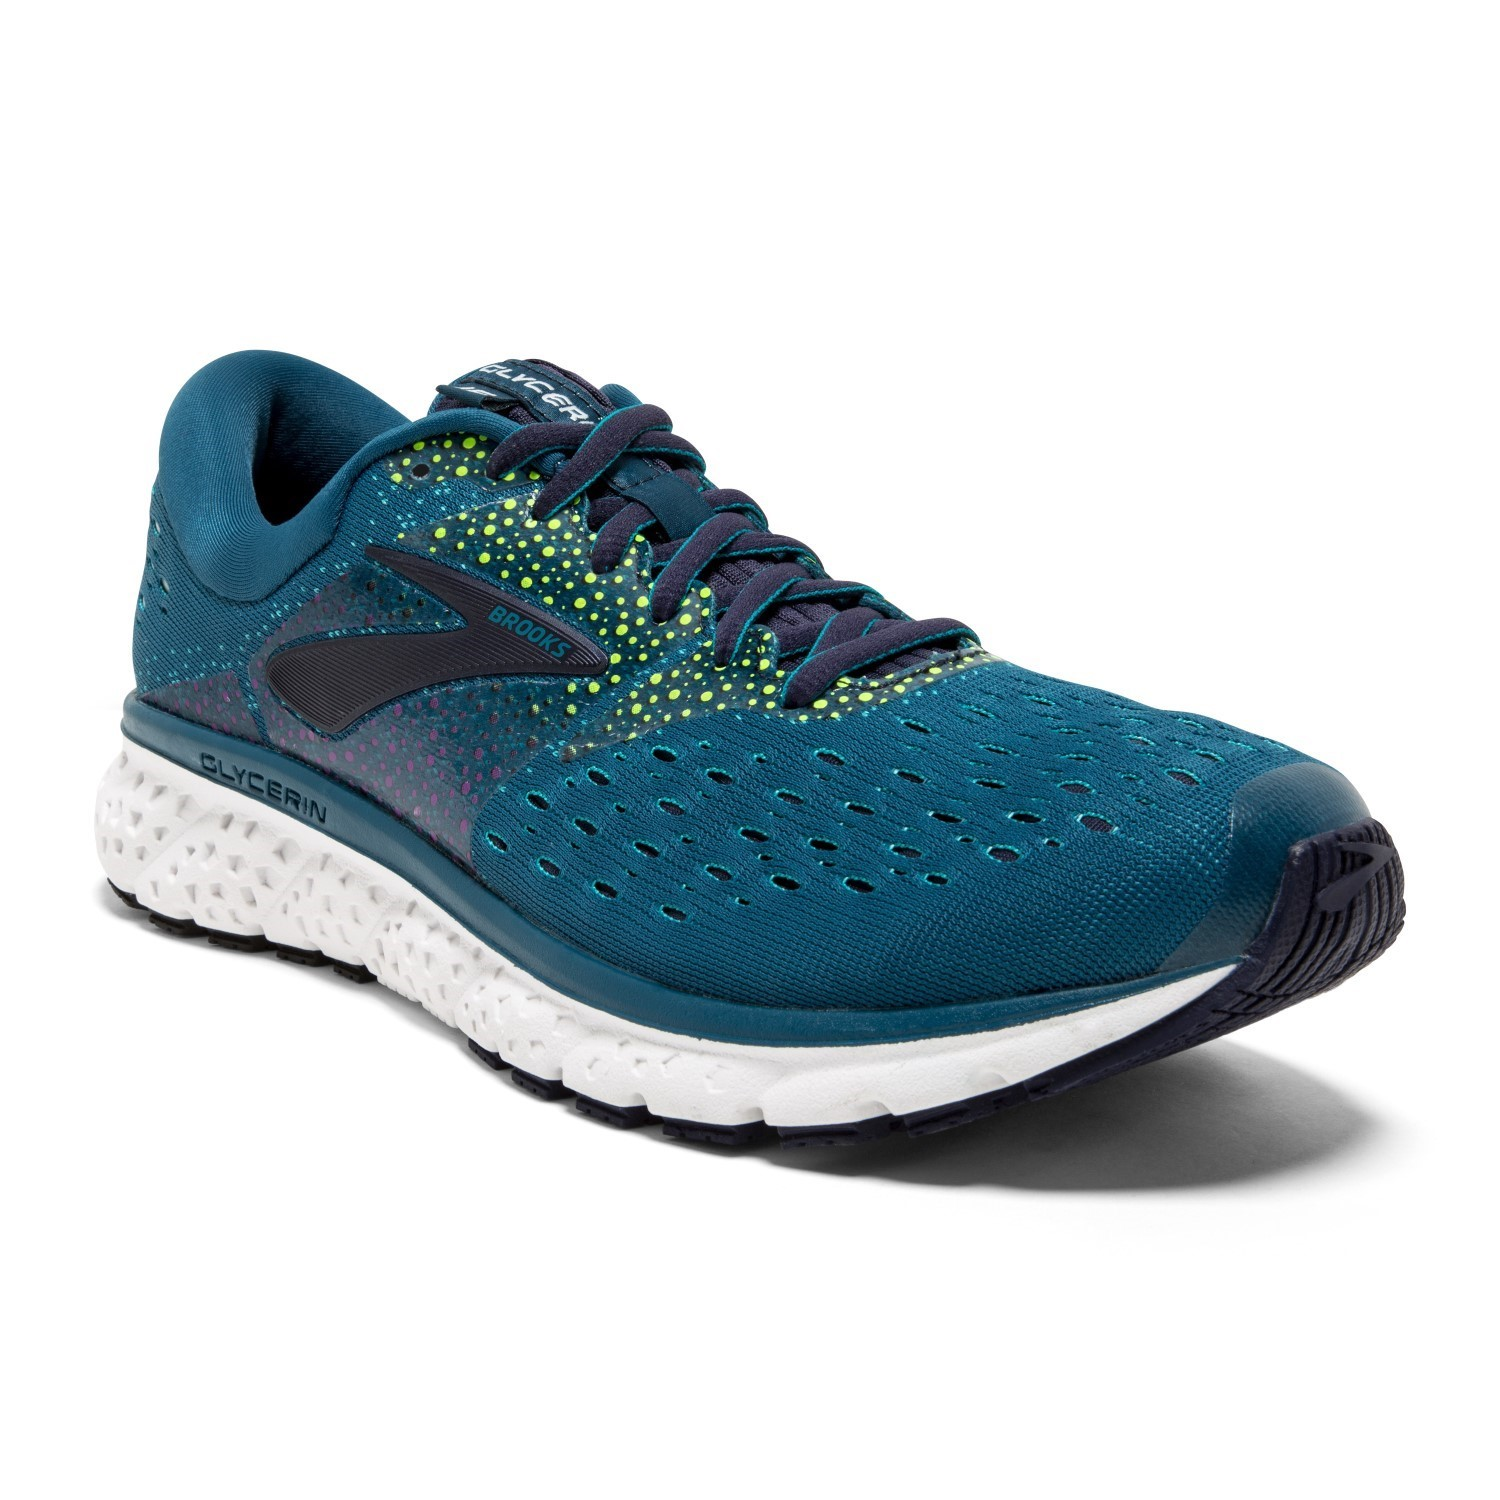 Brooks Glycerin | Best Price Guarantee at DICK'S